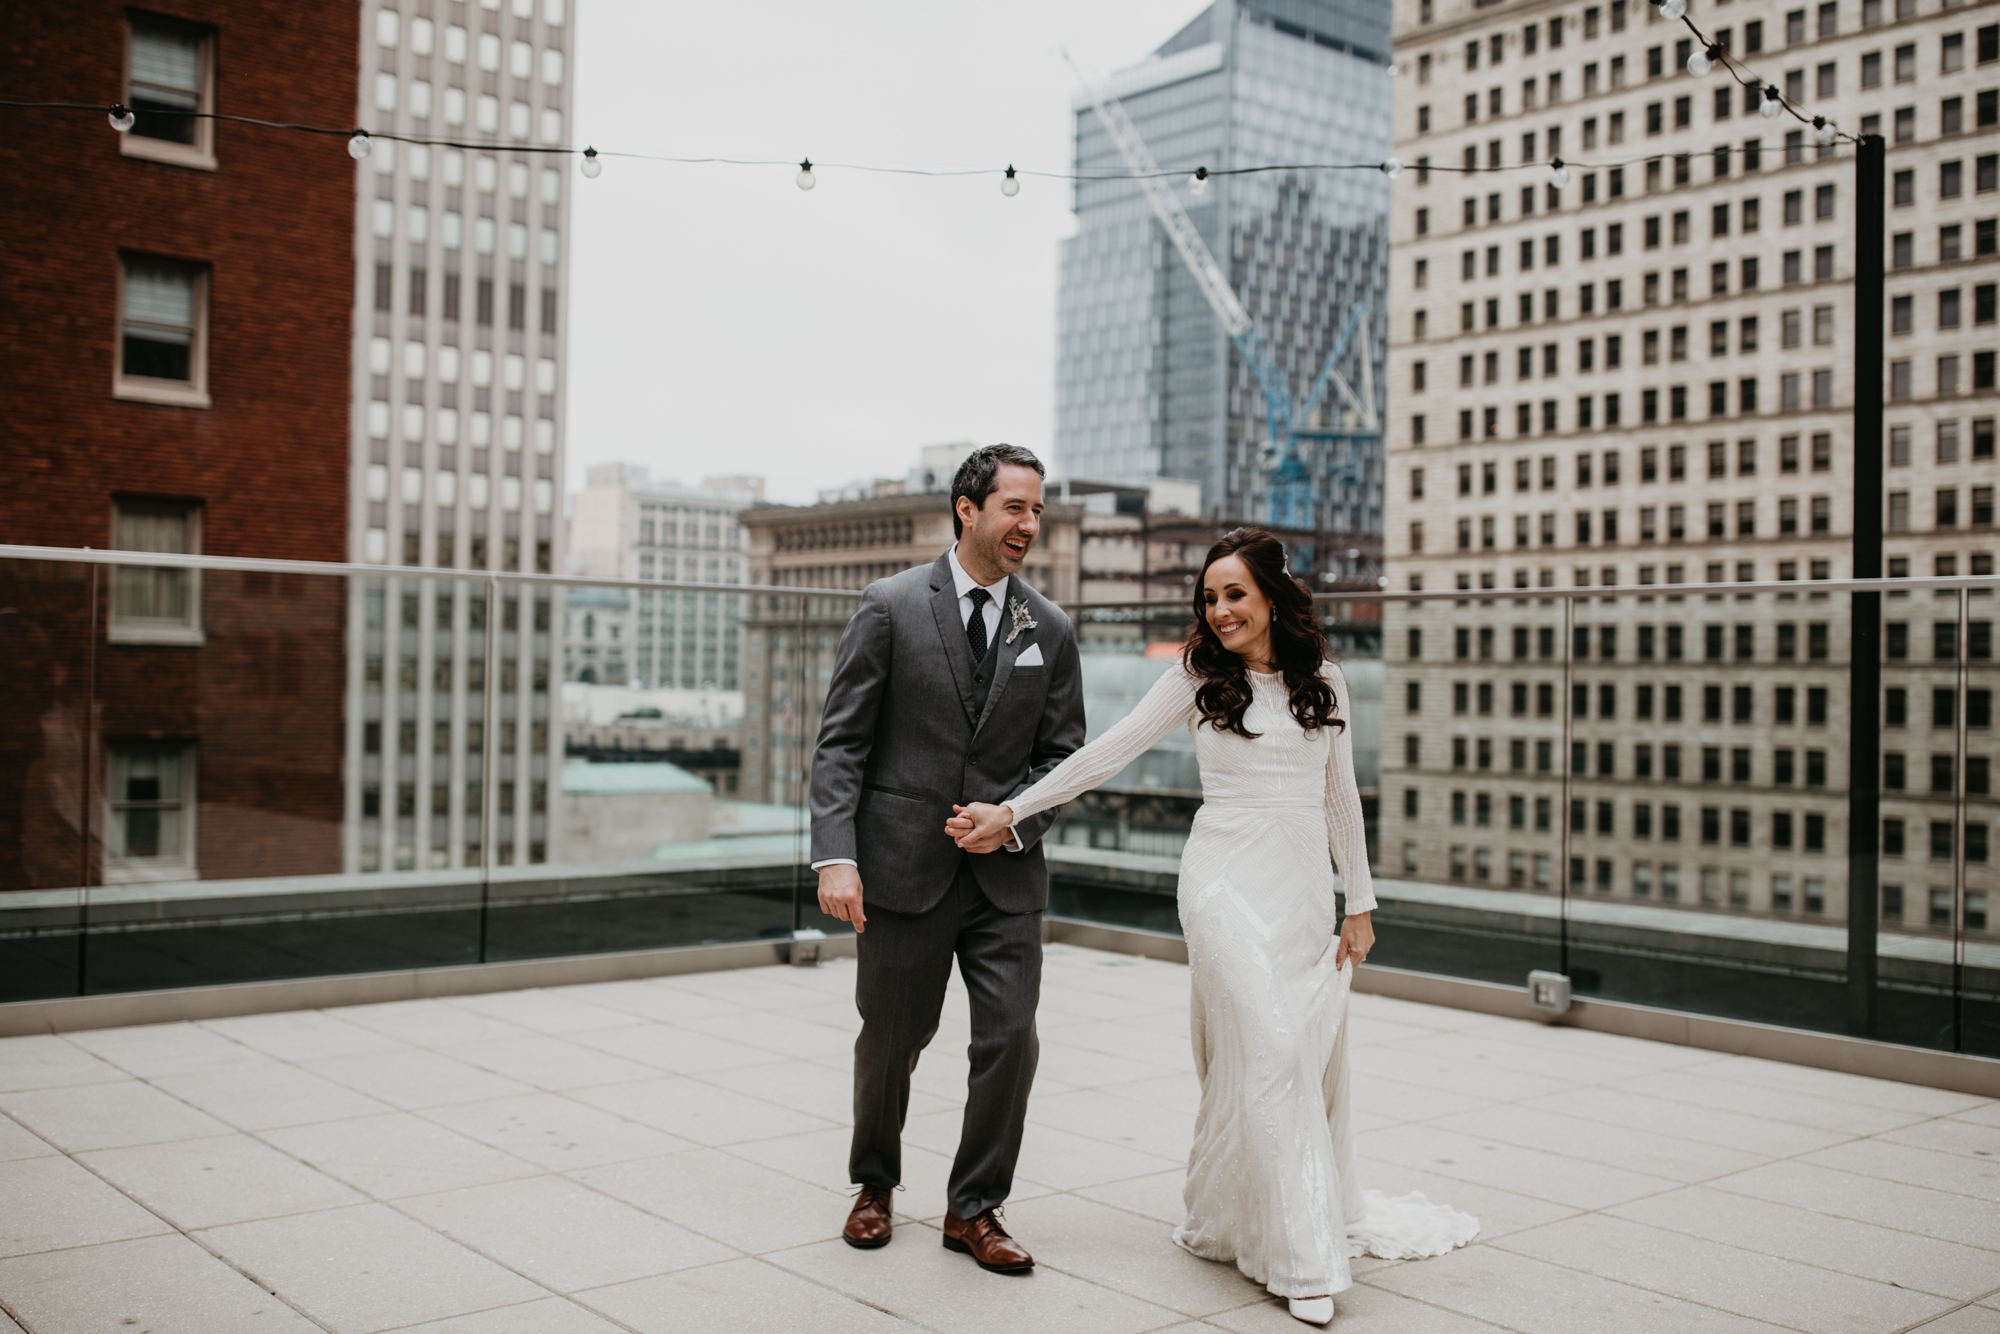 Pittsburgh wedding Photographer, December wedding in Pittsburgh, Holiday wedding, Pittsburgh wedding at SLATE, Blanc De Blanc Bridal, Hannah Conard Beauty, Simply Captivating hair, Mocha Rose floral, First look, Neutral tone bridal party, Hotel Monaco Pittsburgh, Wedding photos at Bar Marco, long sleeve gown, Indie gowns in Pittsburgh, Hair down bride, monochromatic wedding, Pittsburgh Winter Wedding, amazing wedding florals, floral installation for the aisle